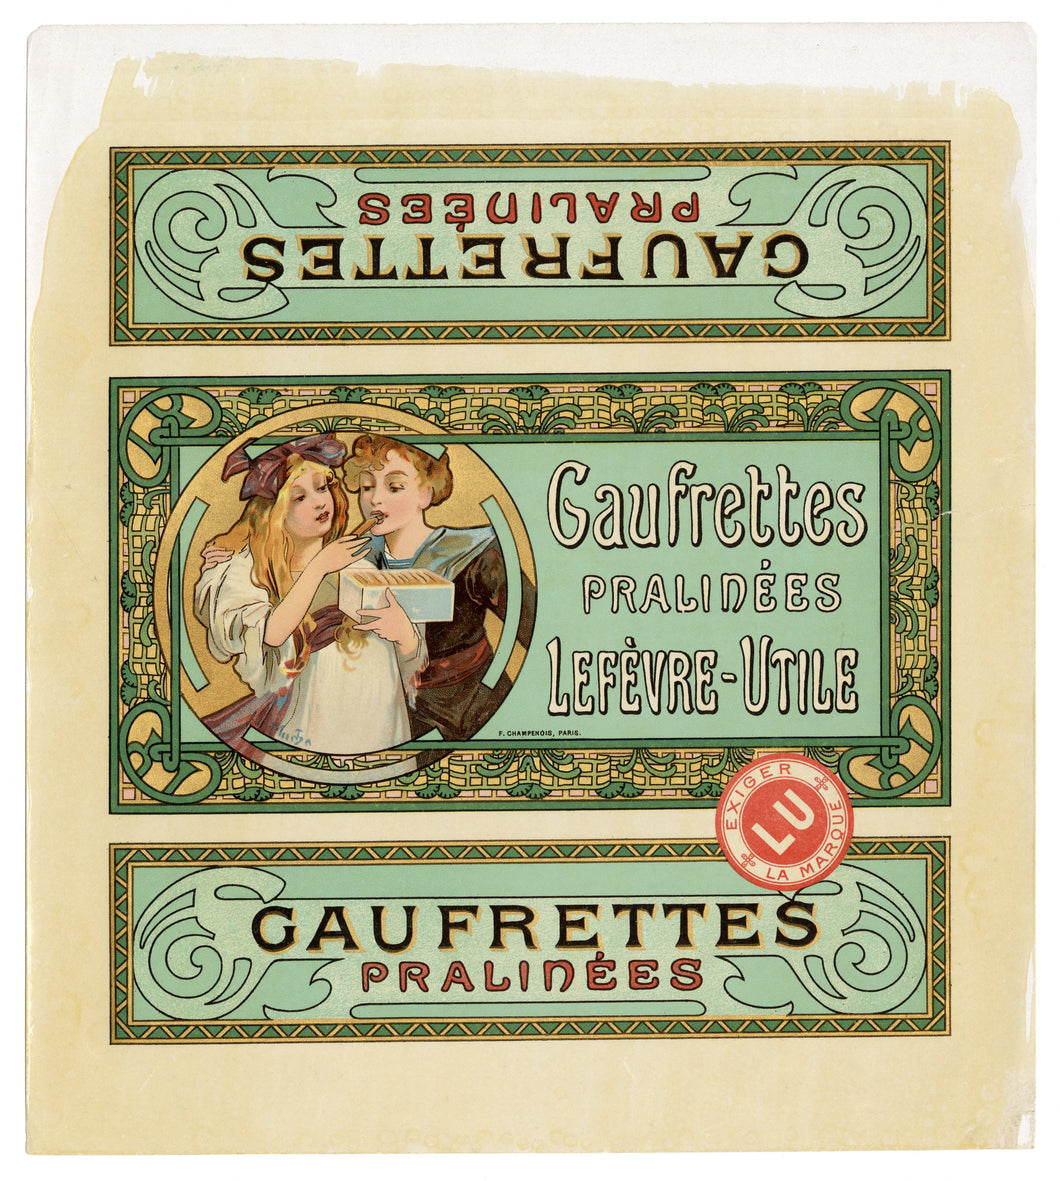 Rare ART NOUVEAU Lefevre-Utile Biscuit Label Illustrated by MUCHA